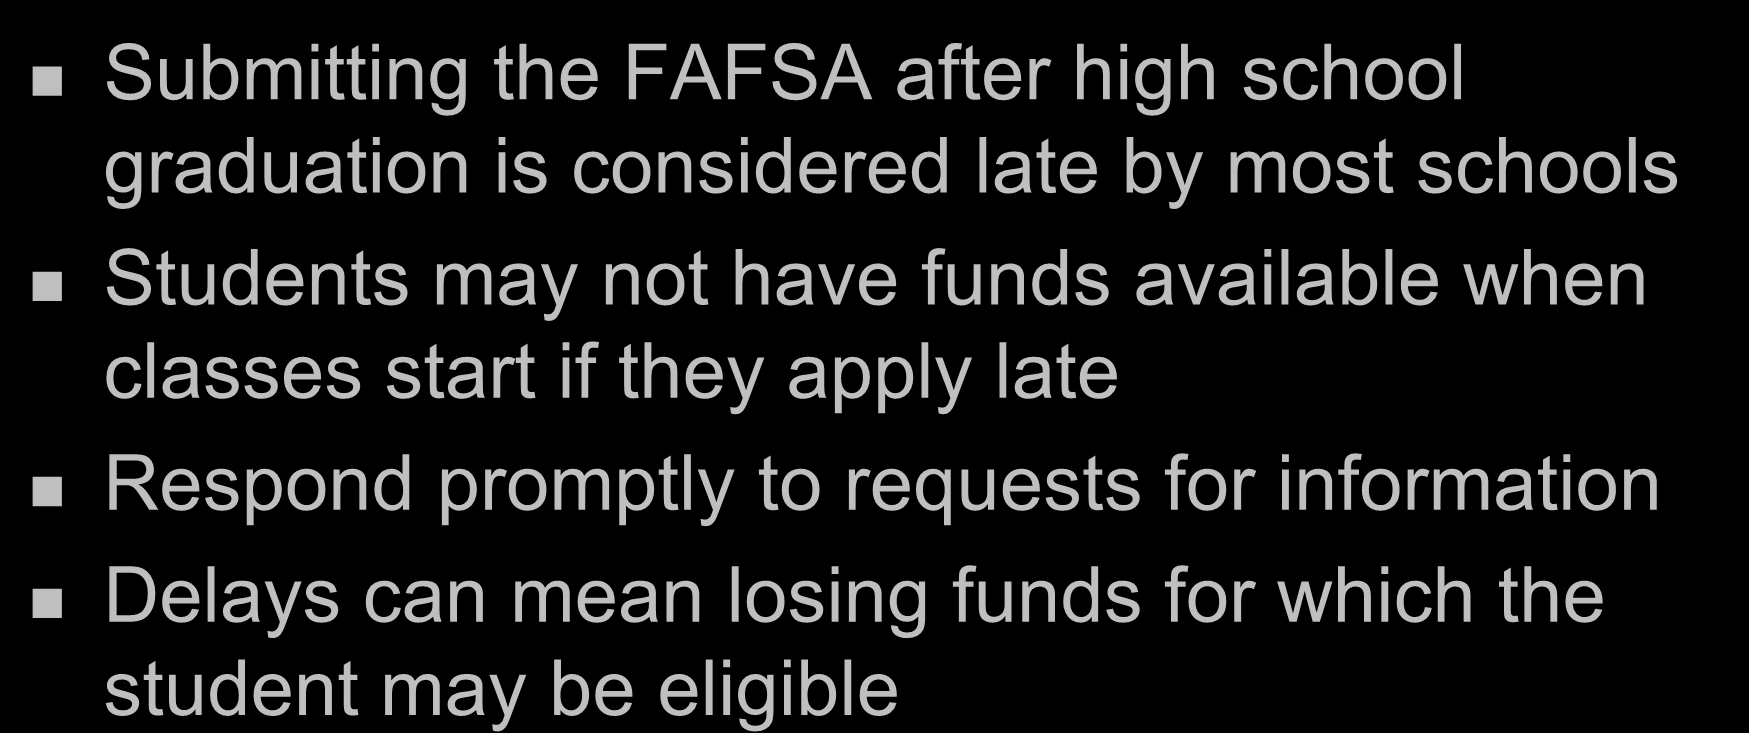 Important Tips Submitting the FAFSA after high school graduation is considered late by most schools Students may not have funds available when